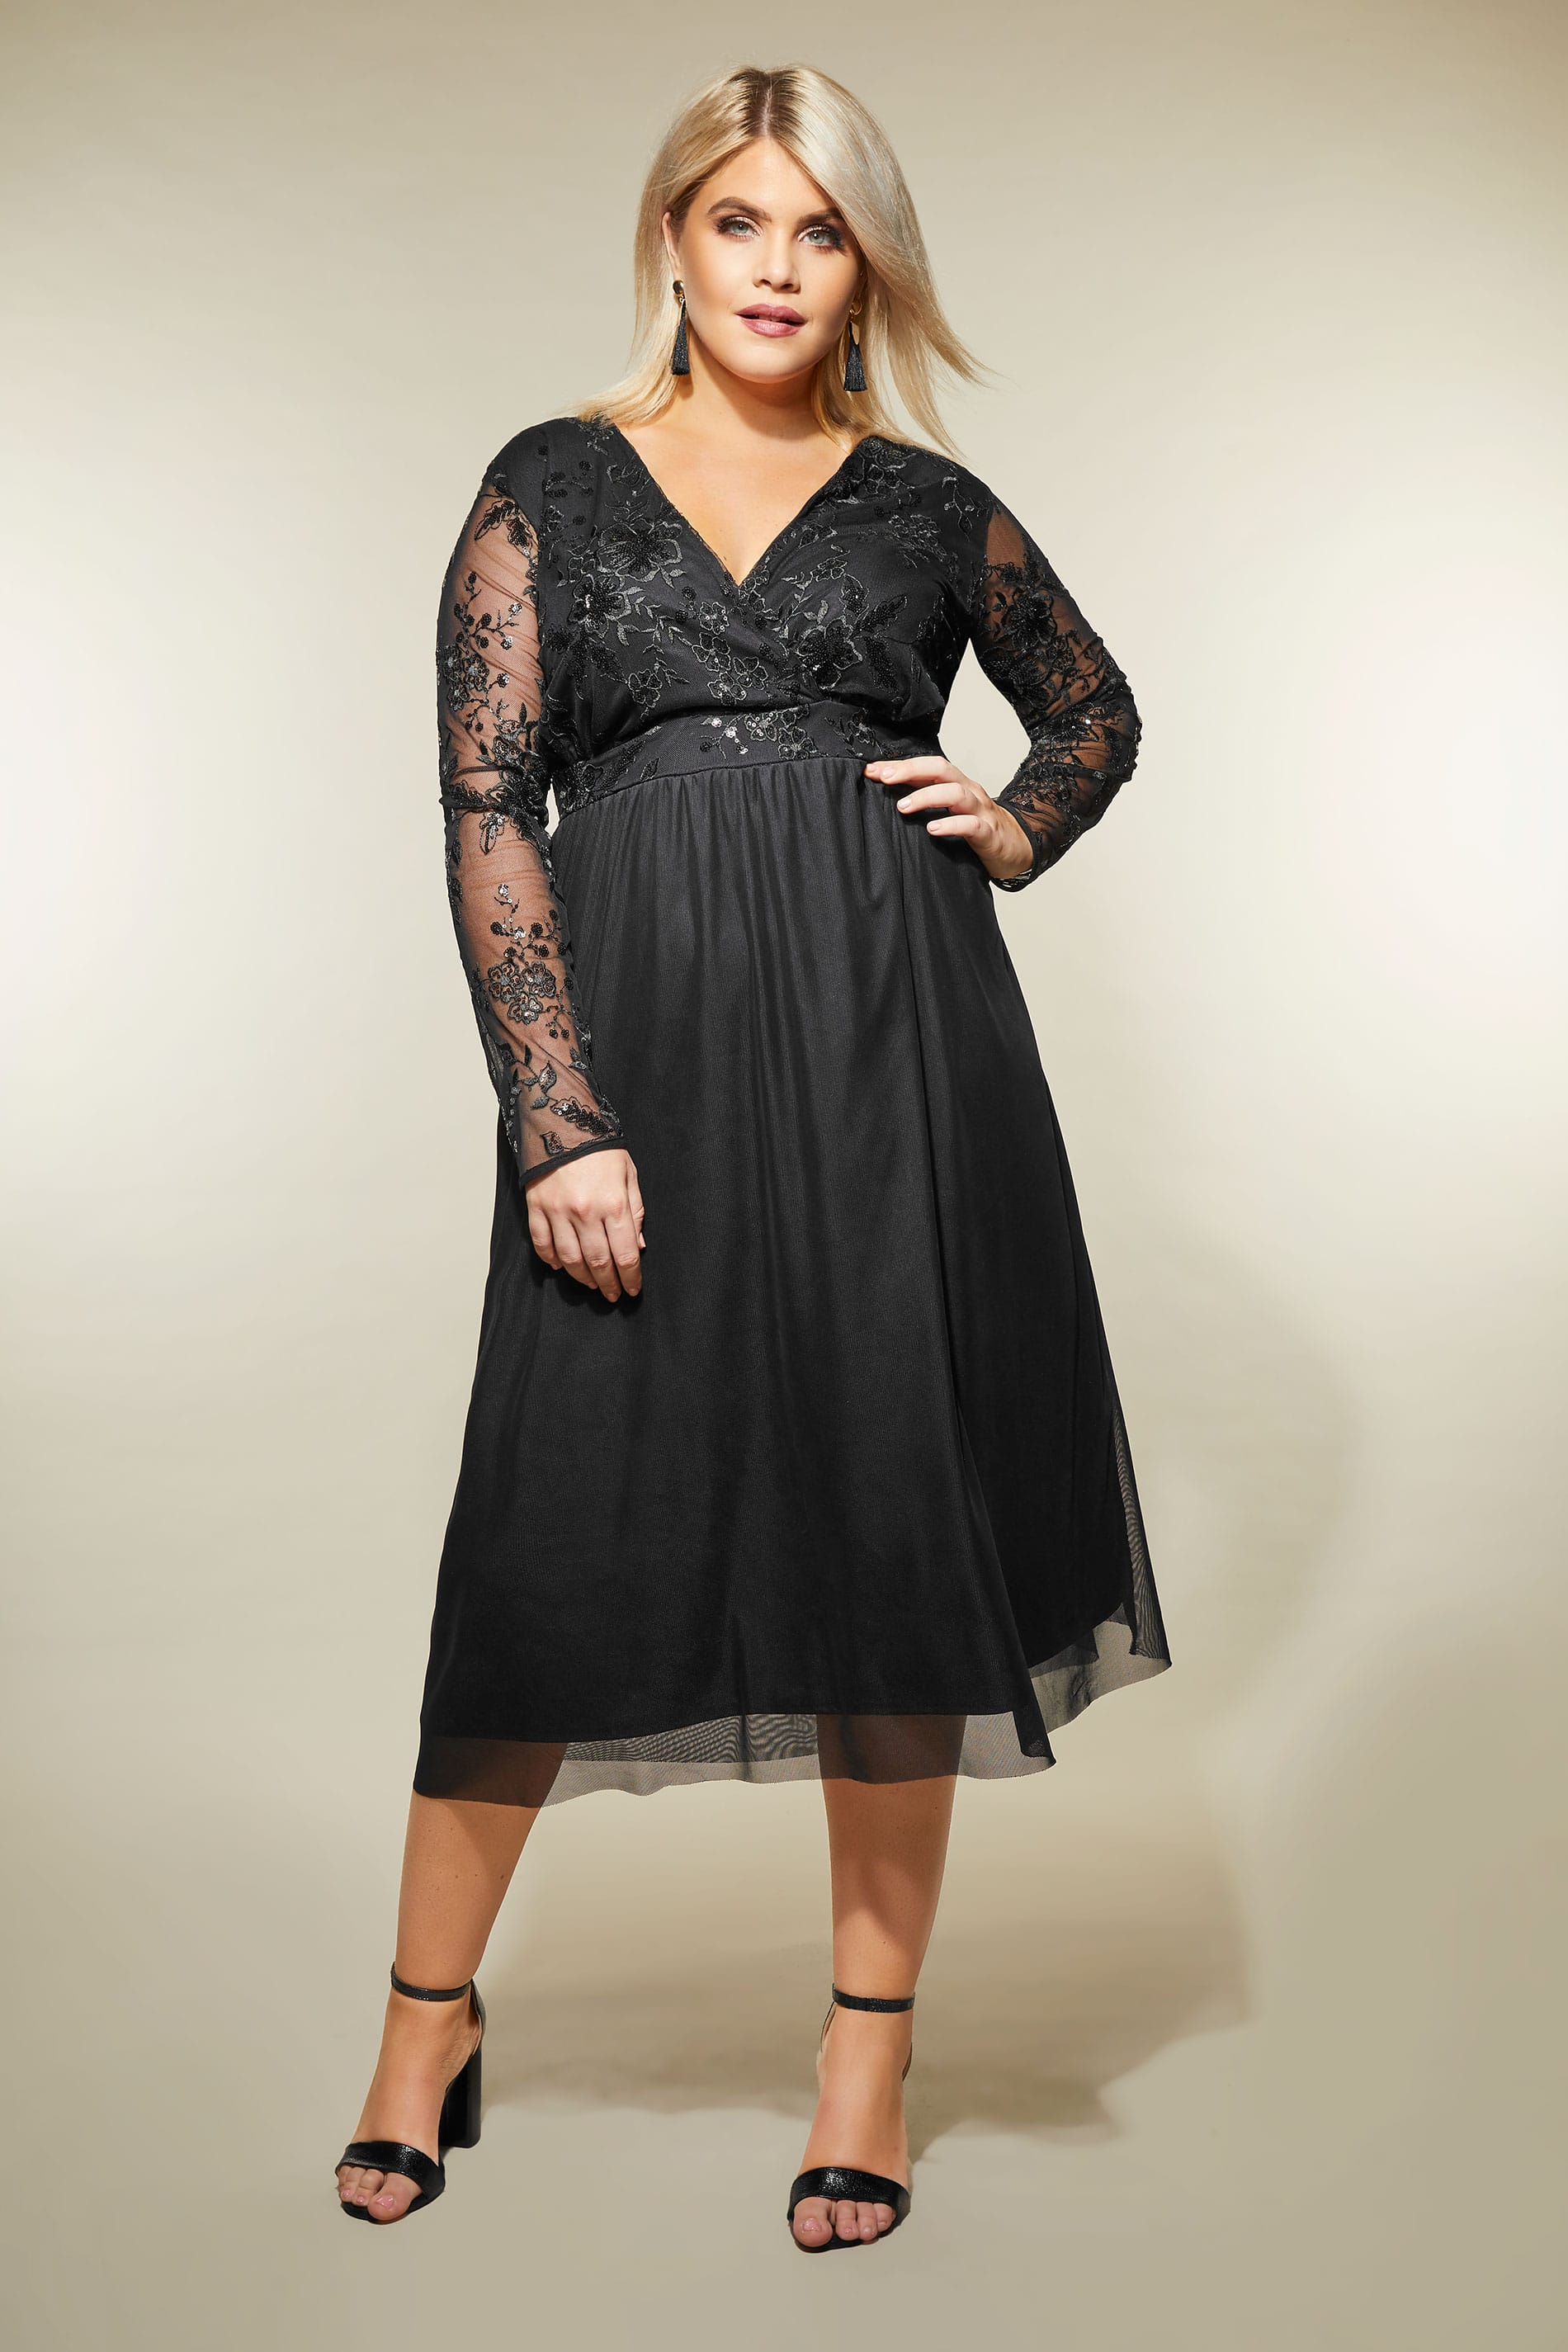 c9b38da5360 YOURS LONDON - Robe Noire Dentelle   Sequins